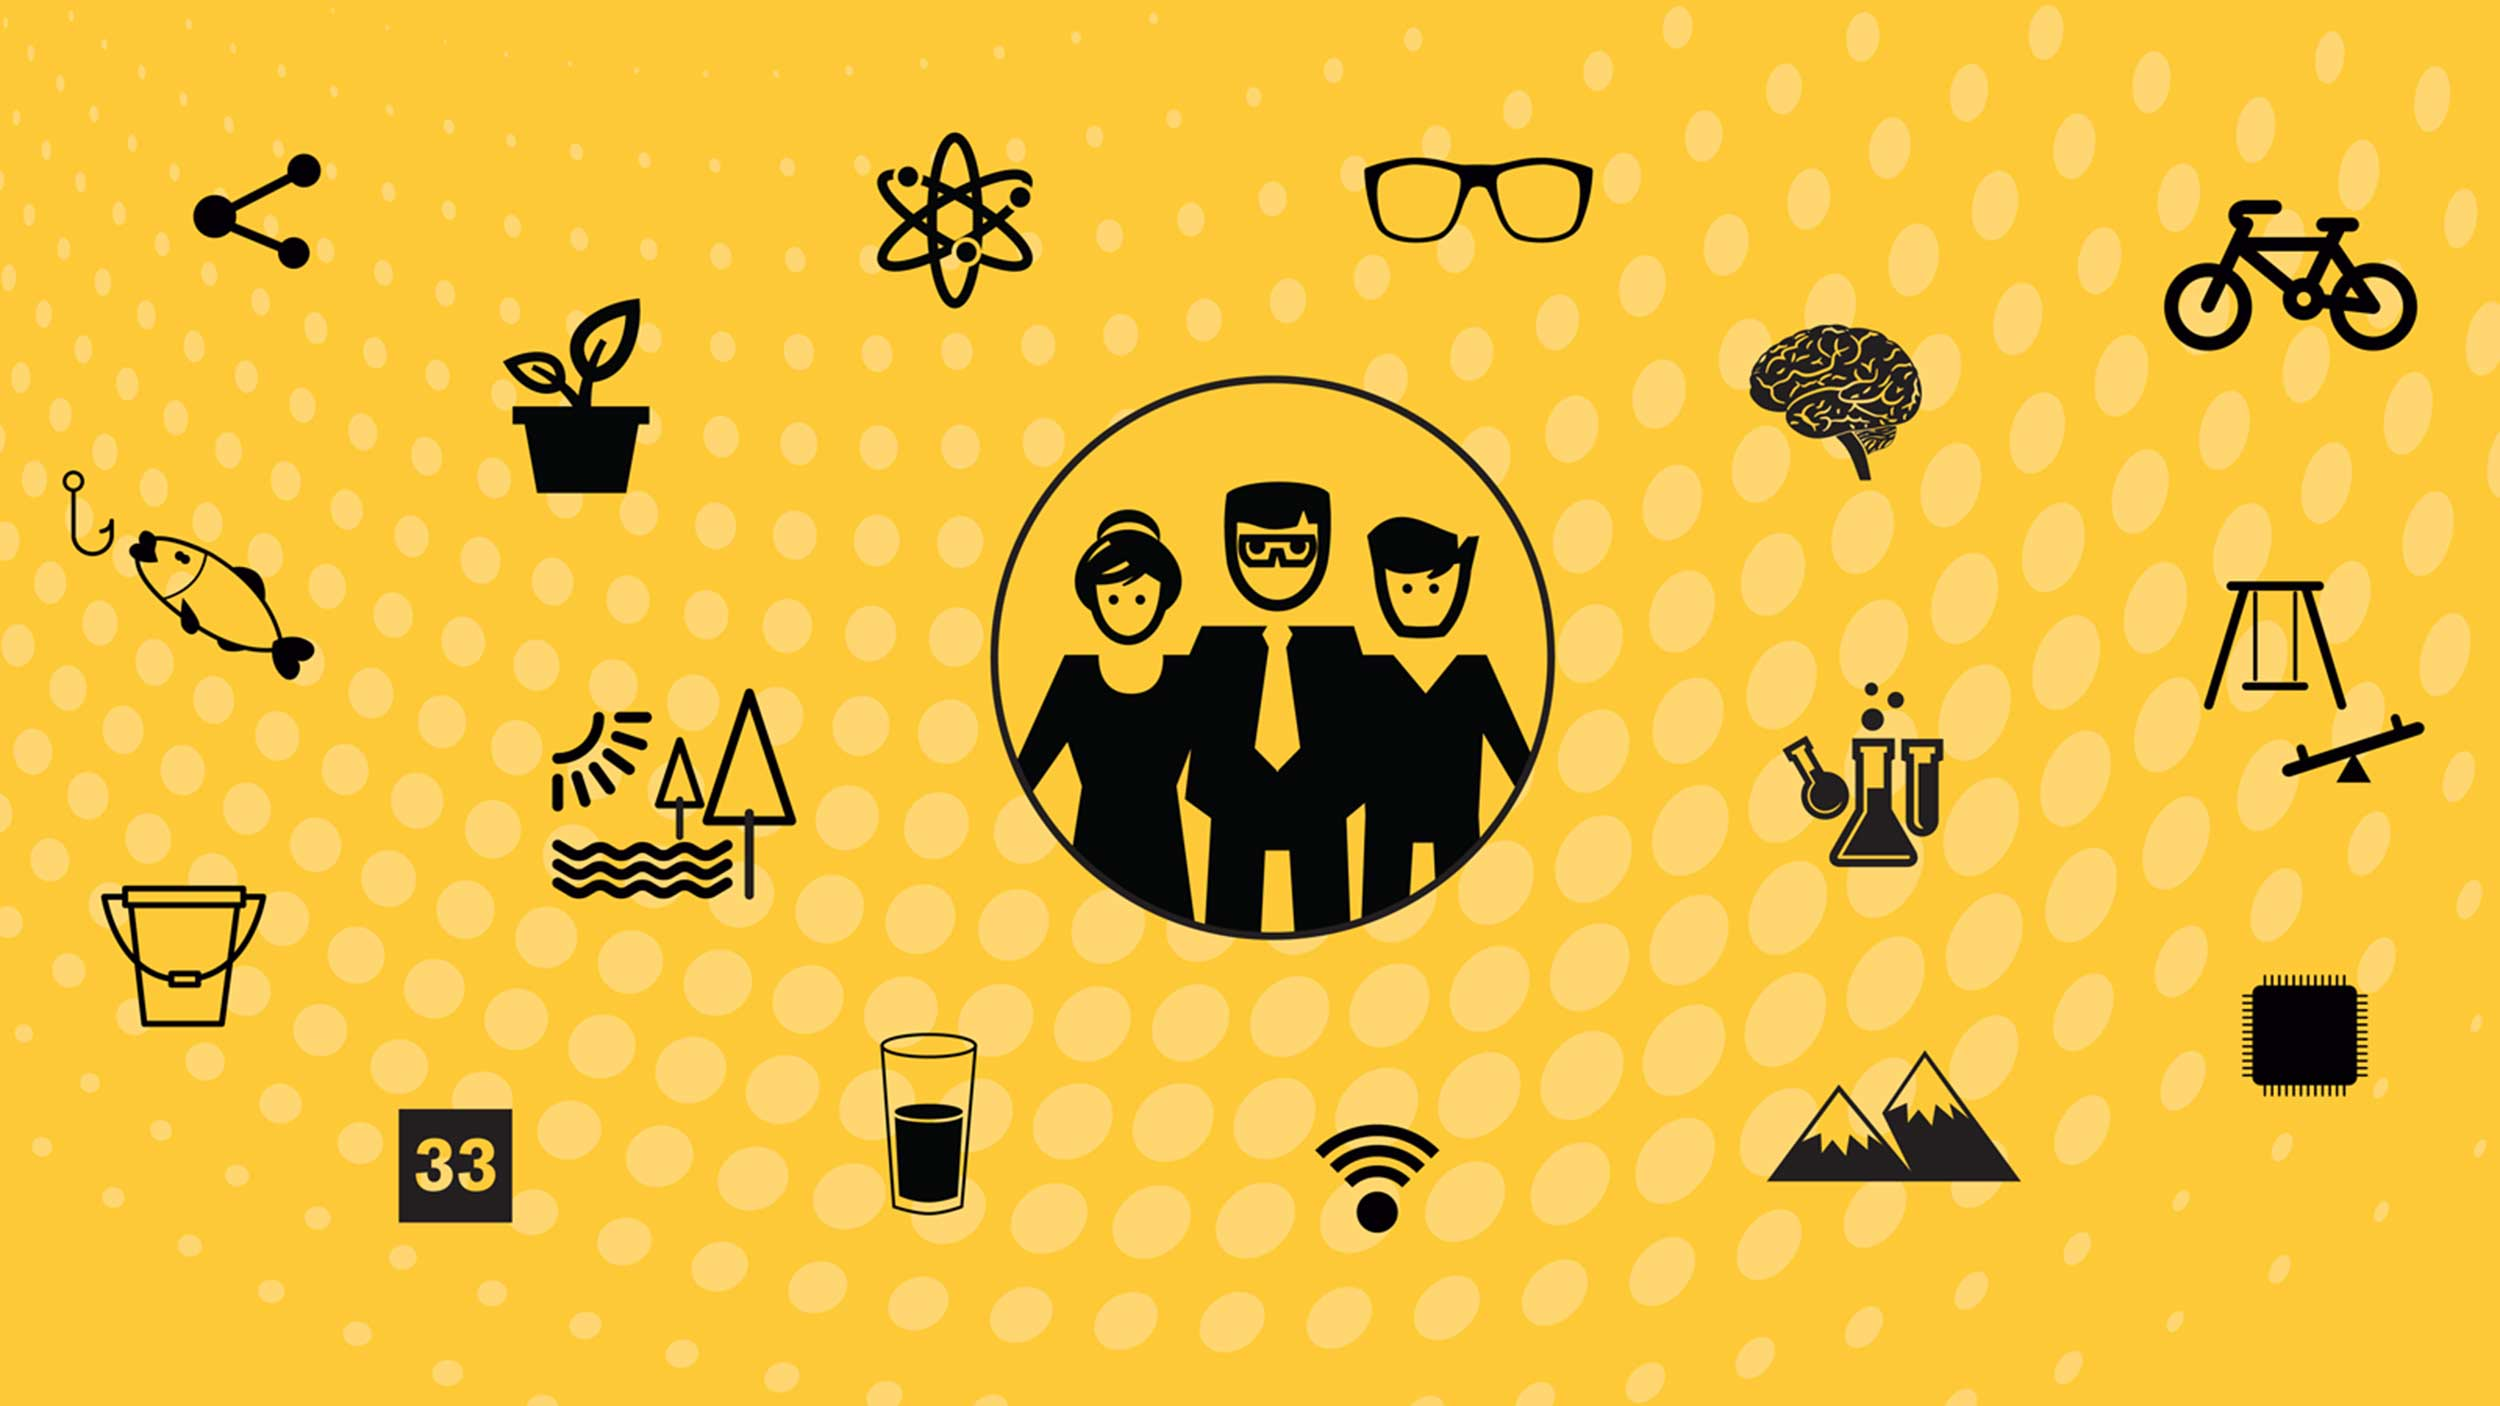 Stylized graphic showing several icons of life: family, science, brain, bike, glasses, atom, fishing, forest, microchips - all representing research done by EPICS students